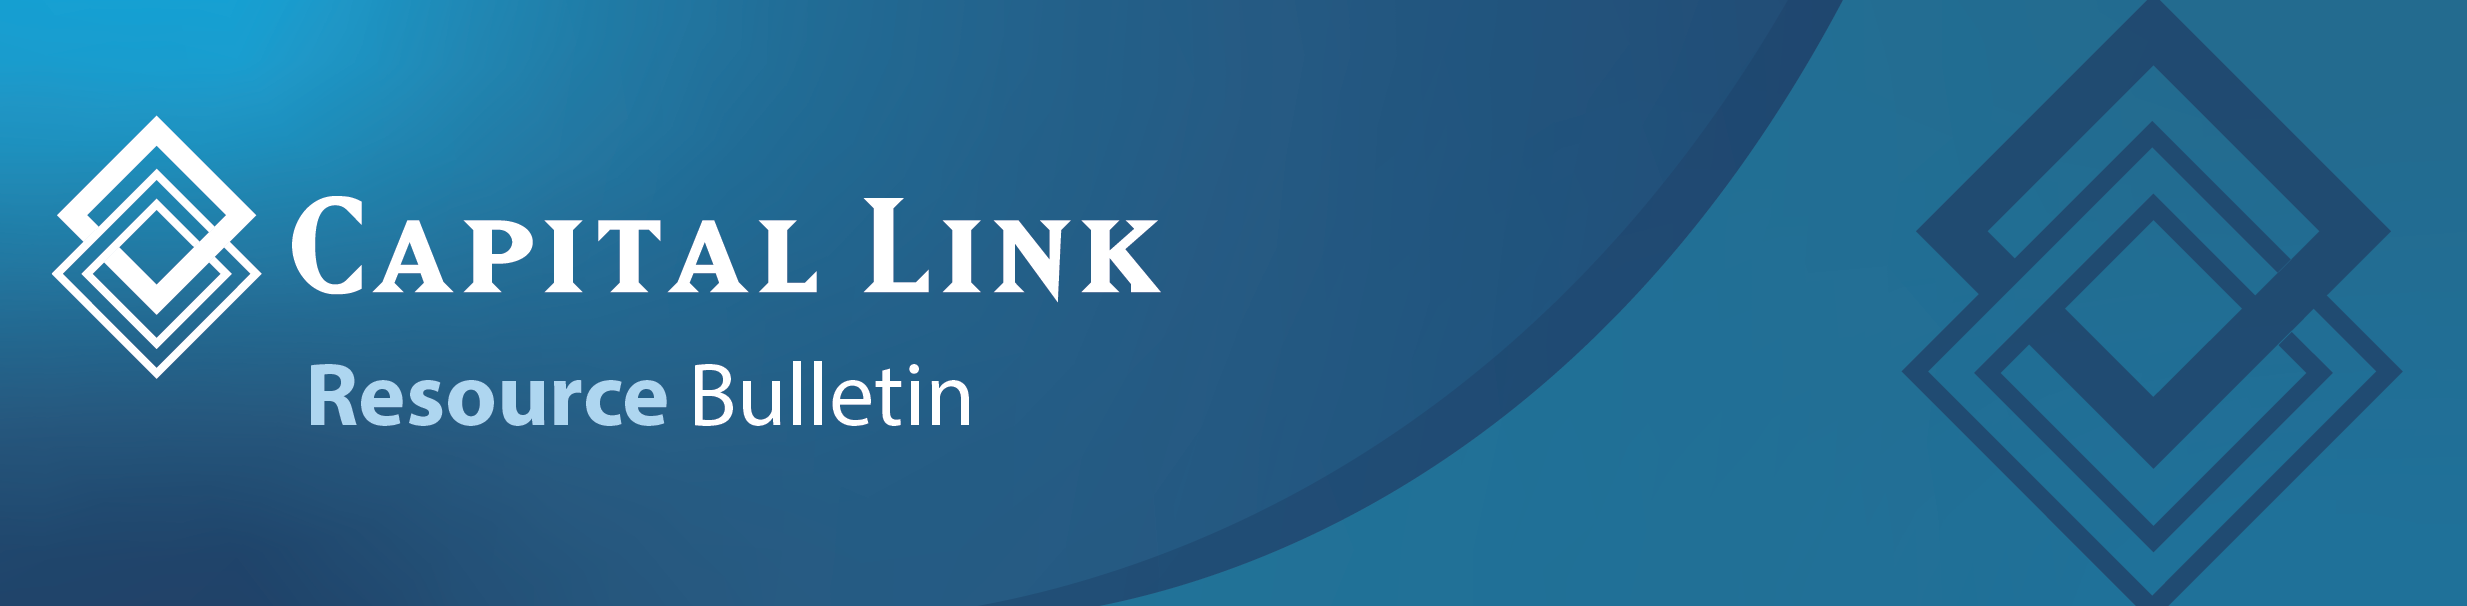 Capital Ink Email Website Banner